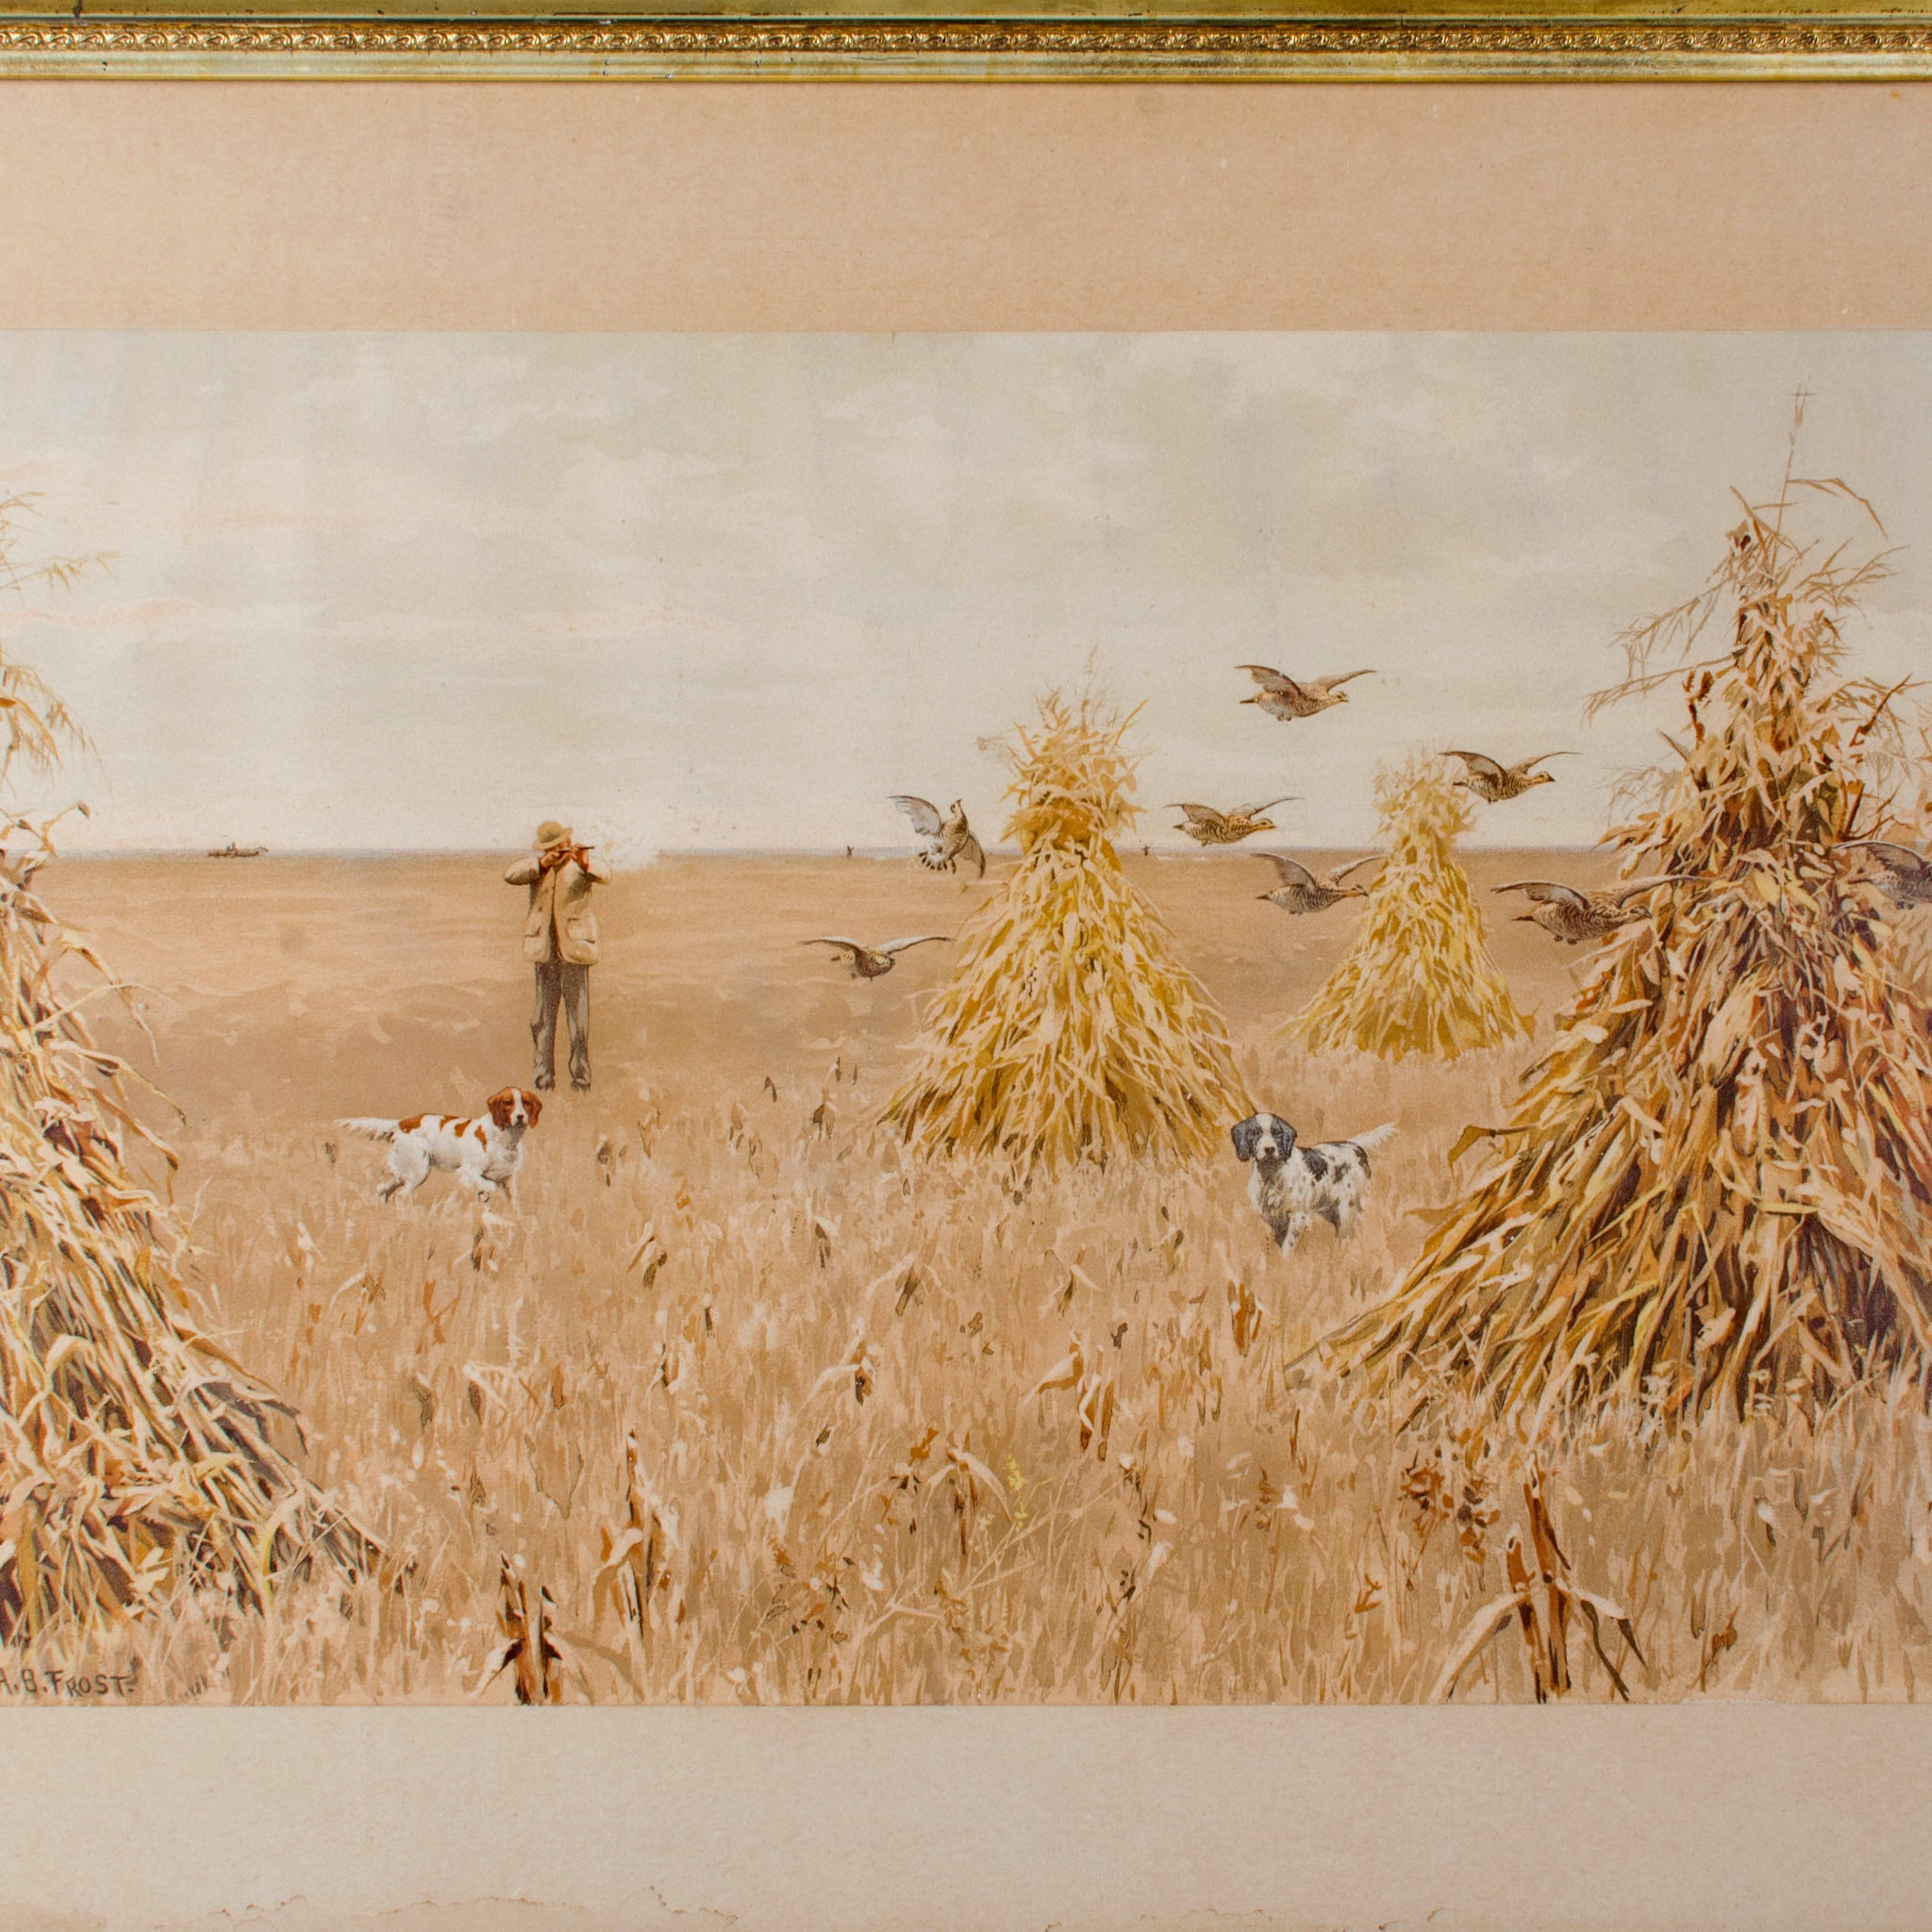 A.B. Frost 'Prairie Chicken' 1895 Chromolithograph from Shooting Pictures